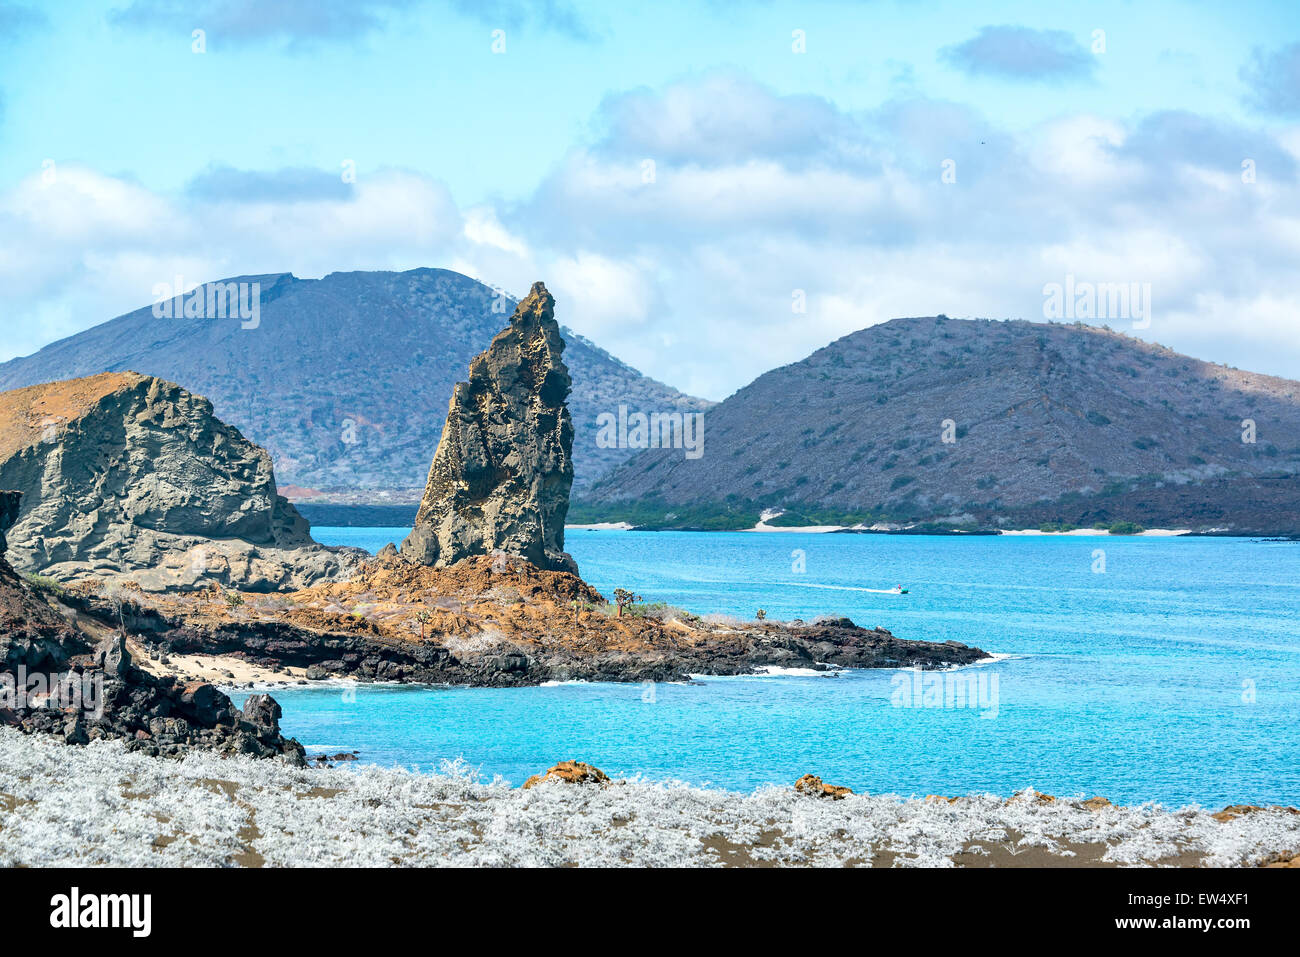 View of the famous Pinnacle Rock in the Galapagos Islands - Stock Image